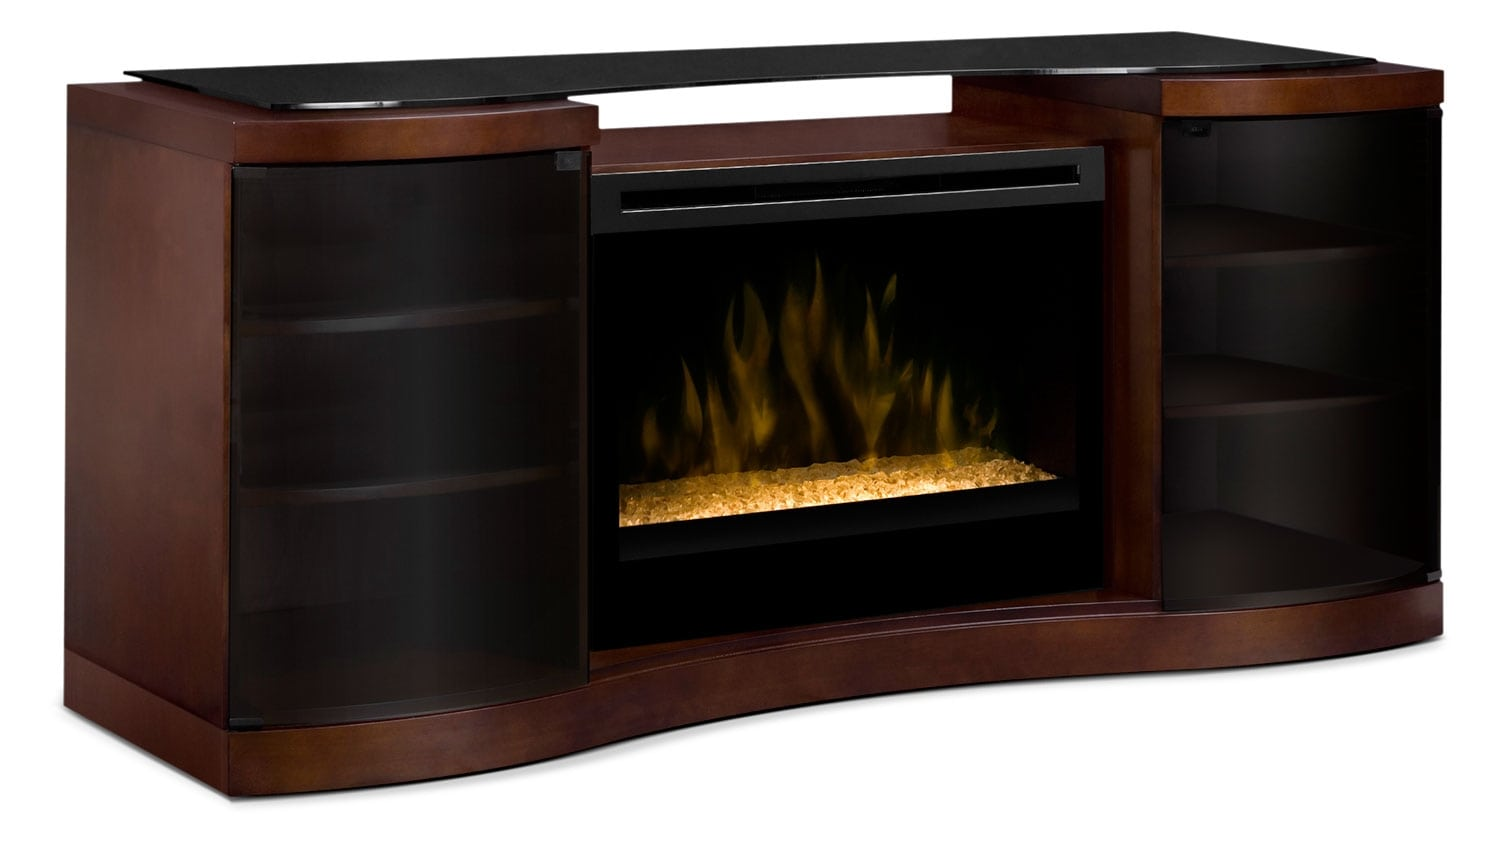 "Grandview 73"" TV Stand with Glass Ember Firebox"